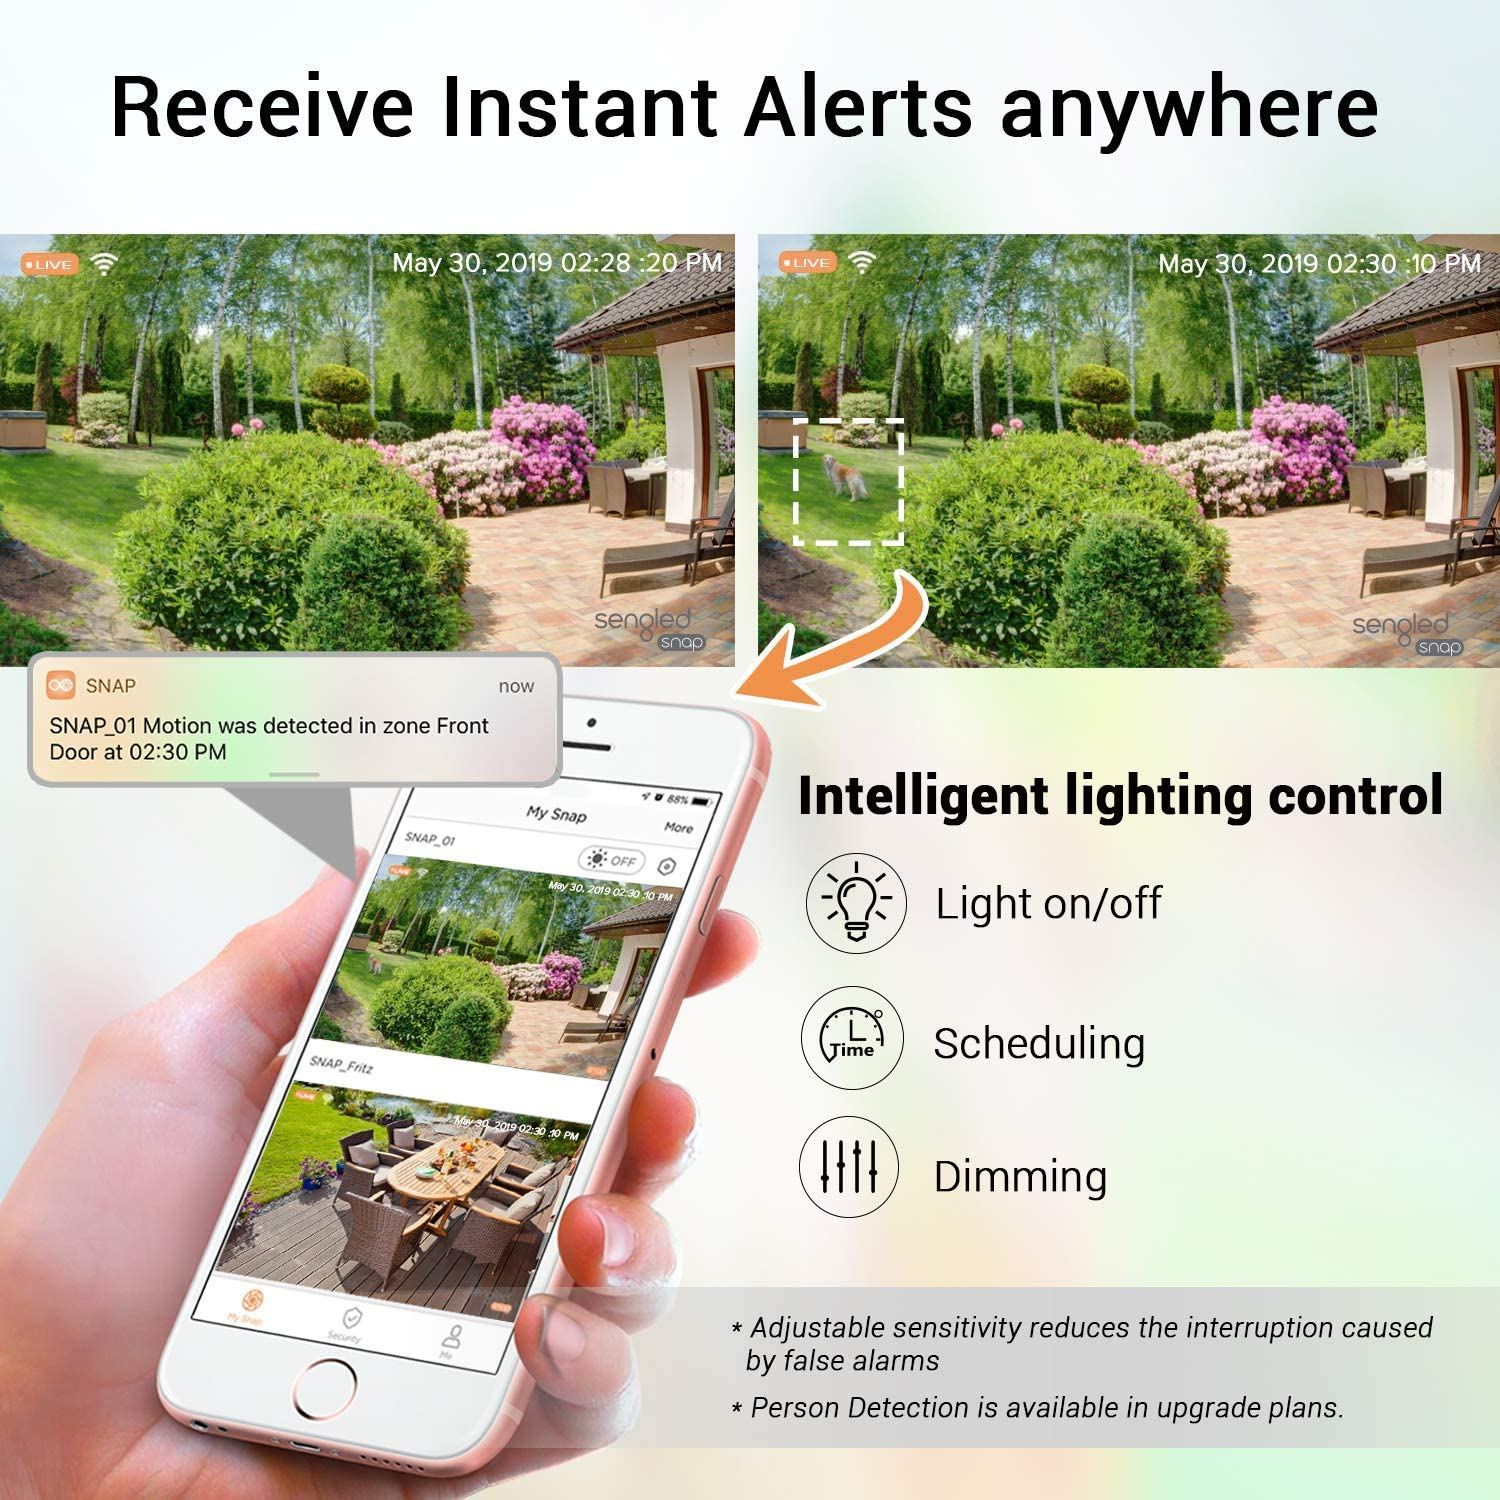 Sengled Light Bulb Camera Wifi Home Security System Wireless Outdoor Waterproof Remote Control Camera Night Vision Motion Activated Alerts 1080p PAR38 E26 LED Floodlight Cam 2 Pack